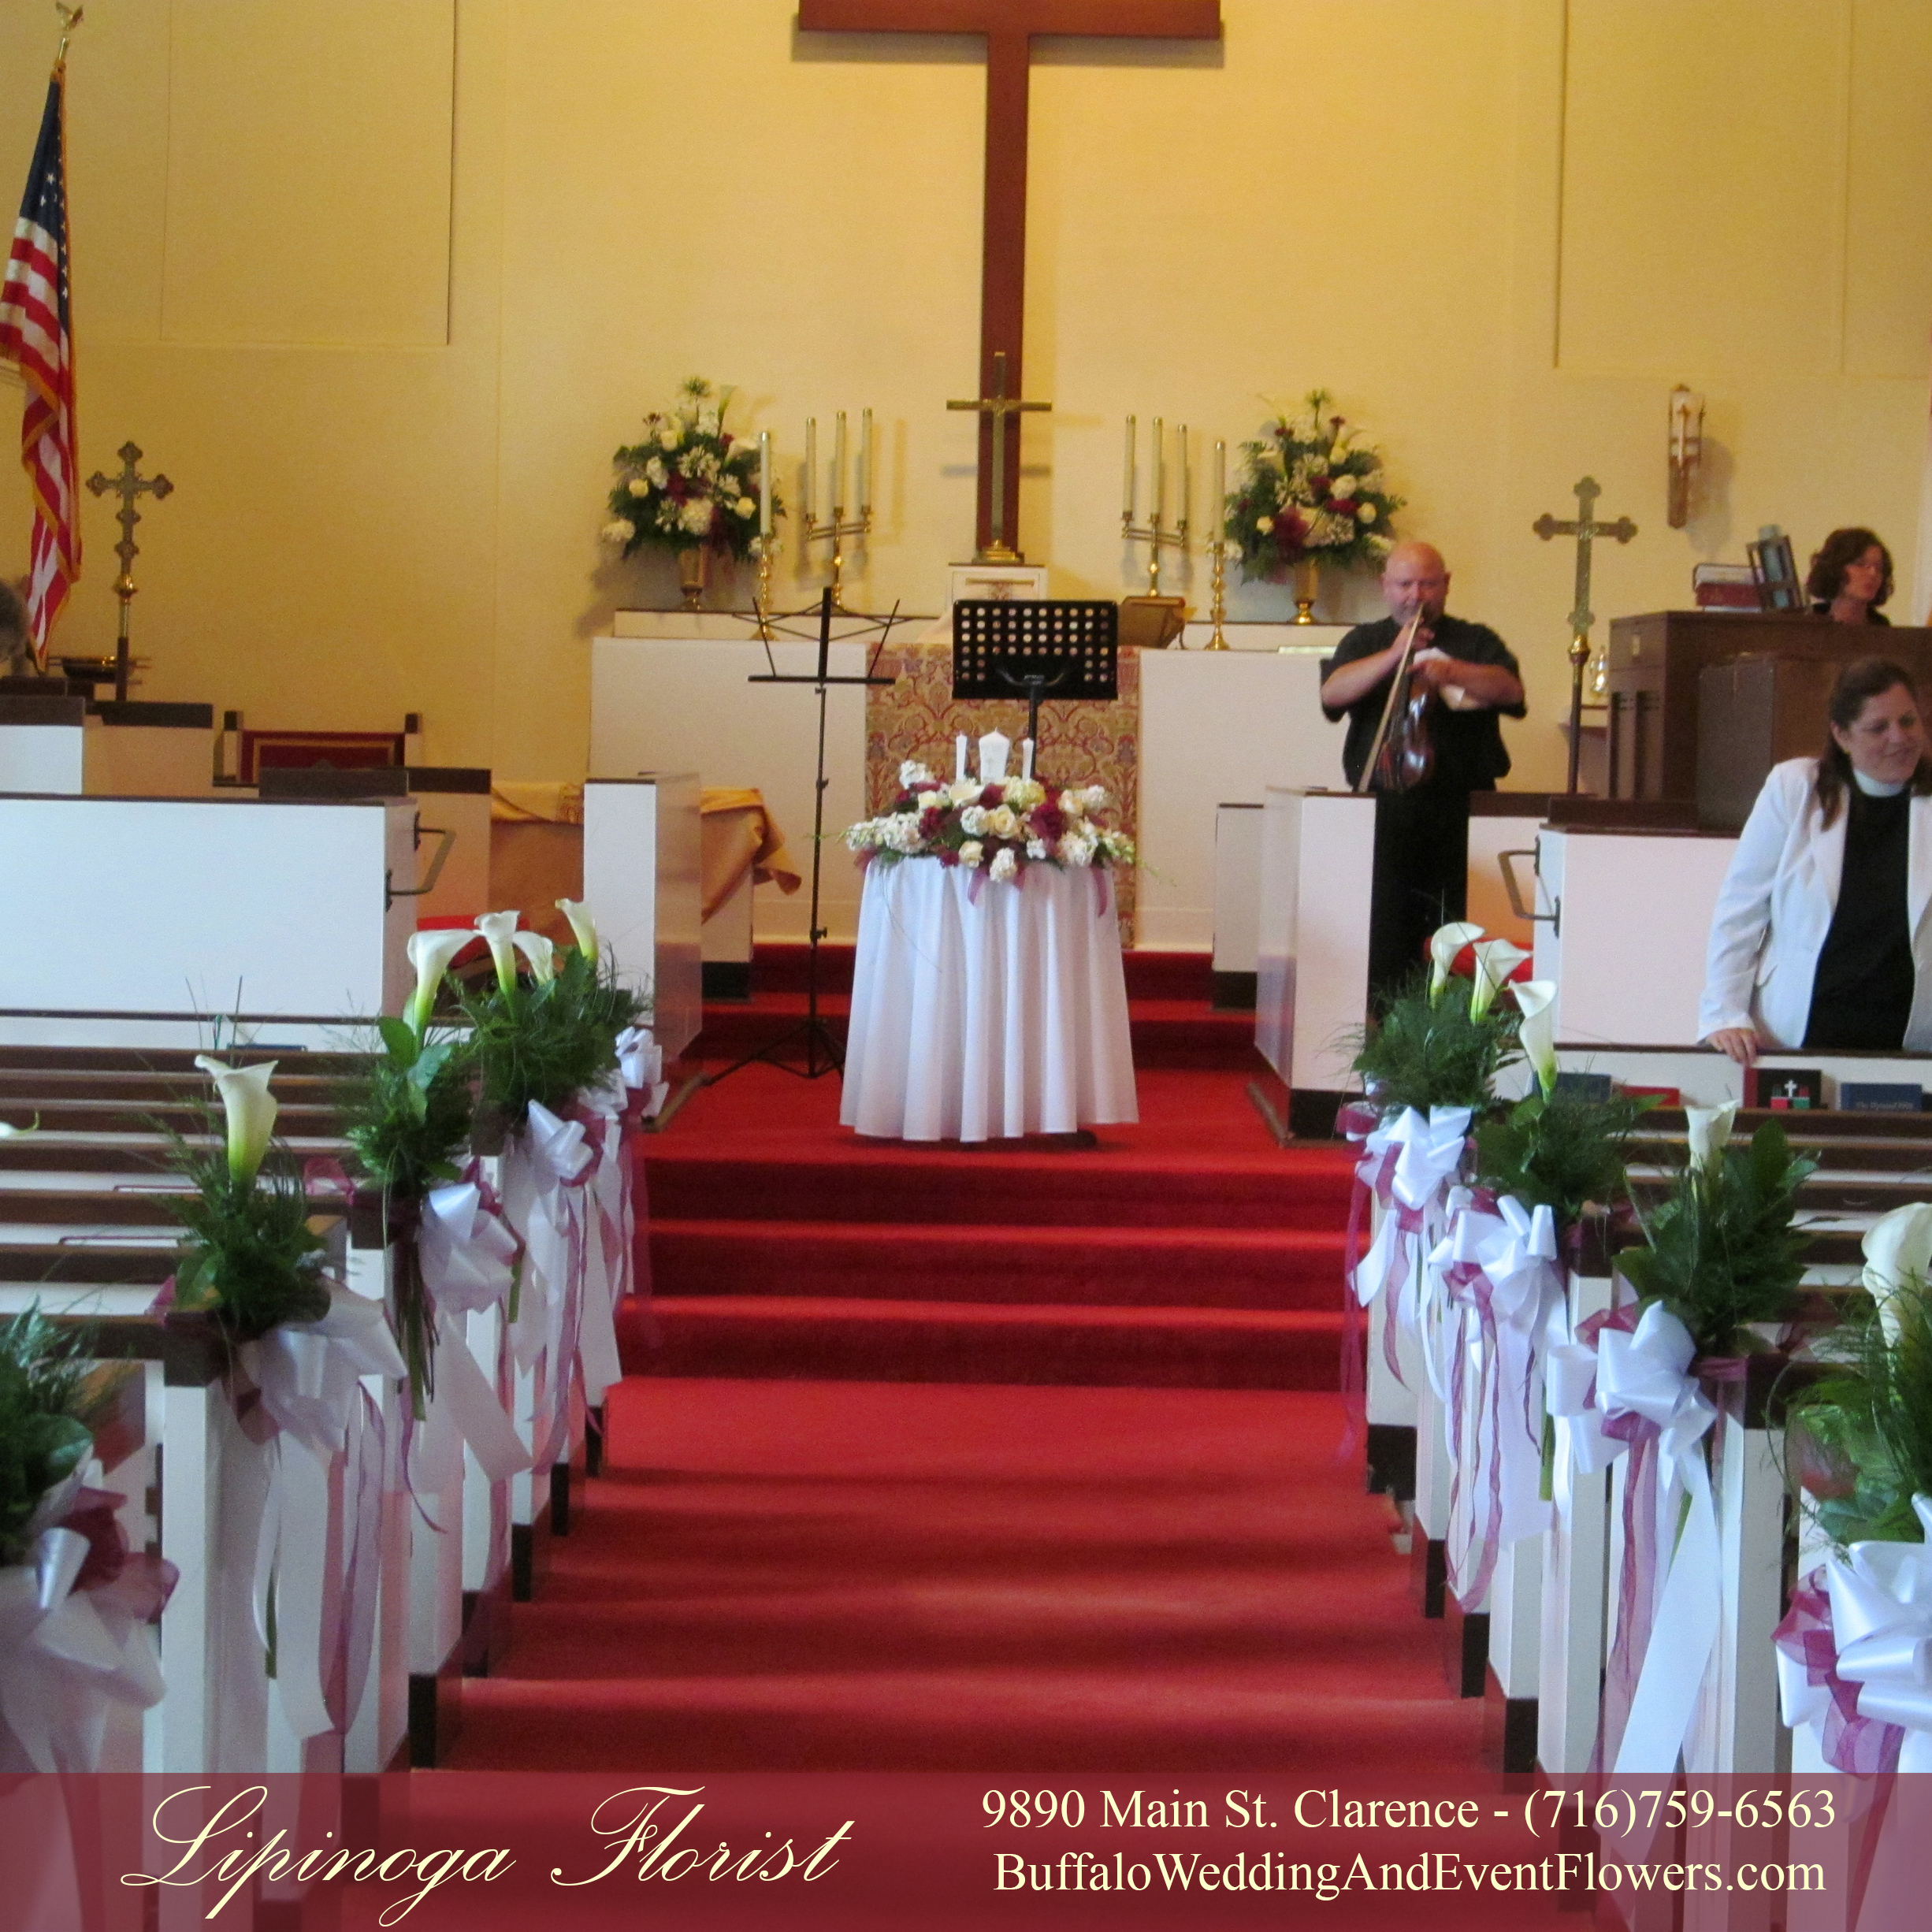 Flowers For Church Wedding Ceremony: Buffalo Wedding & Event Flowers